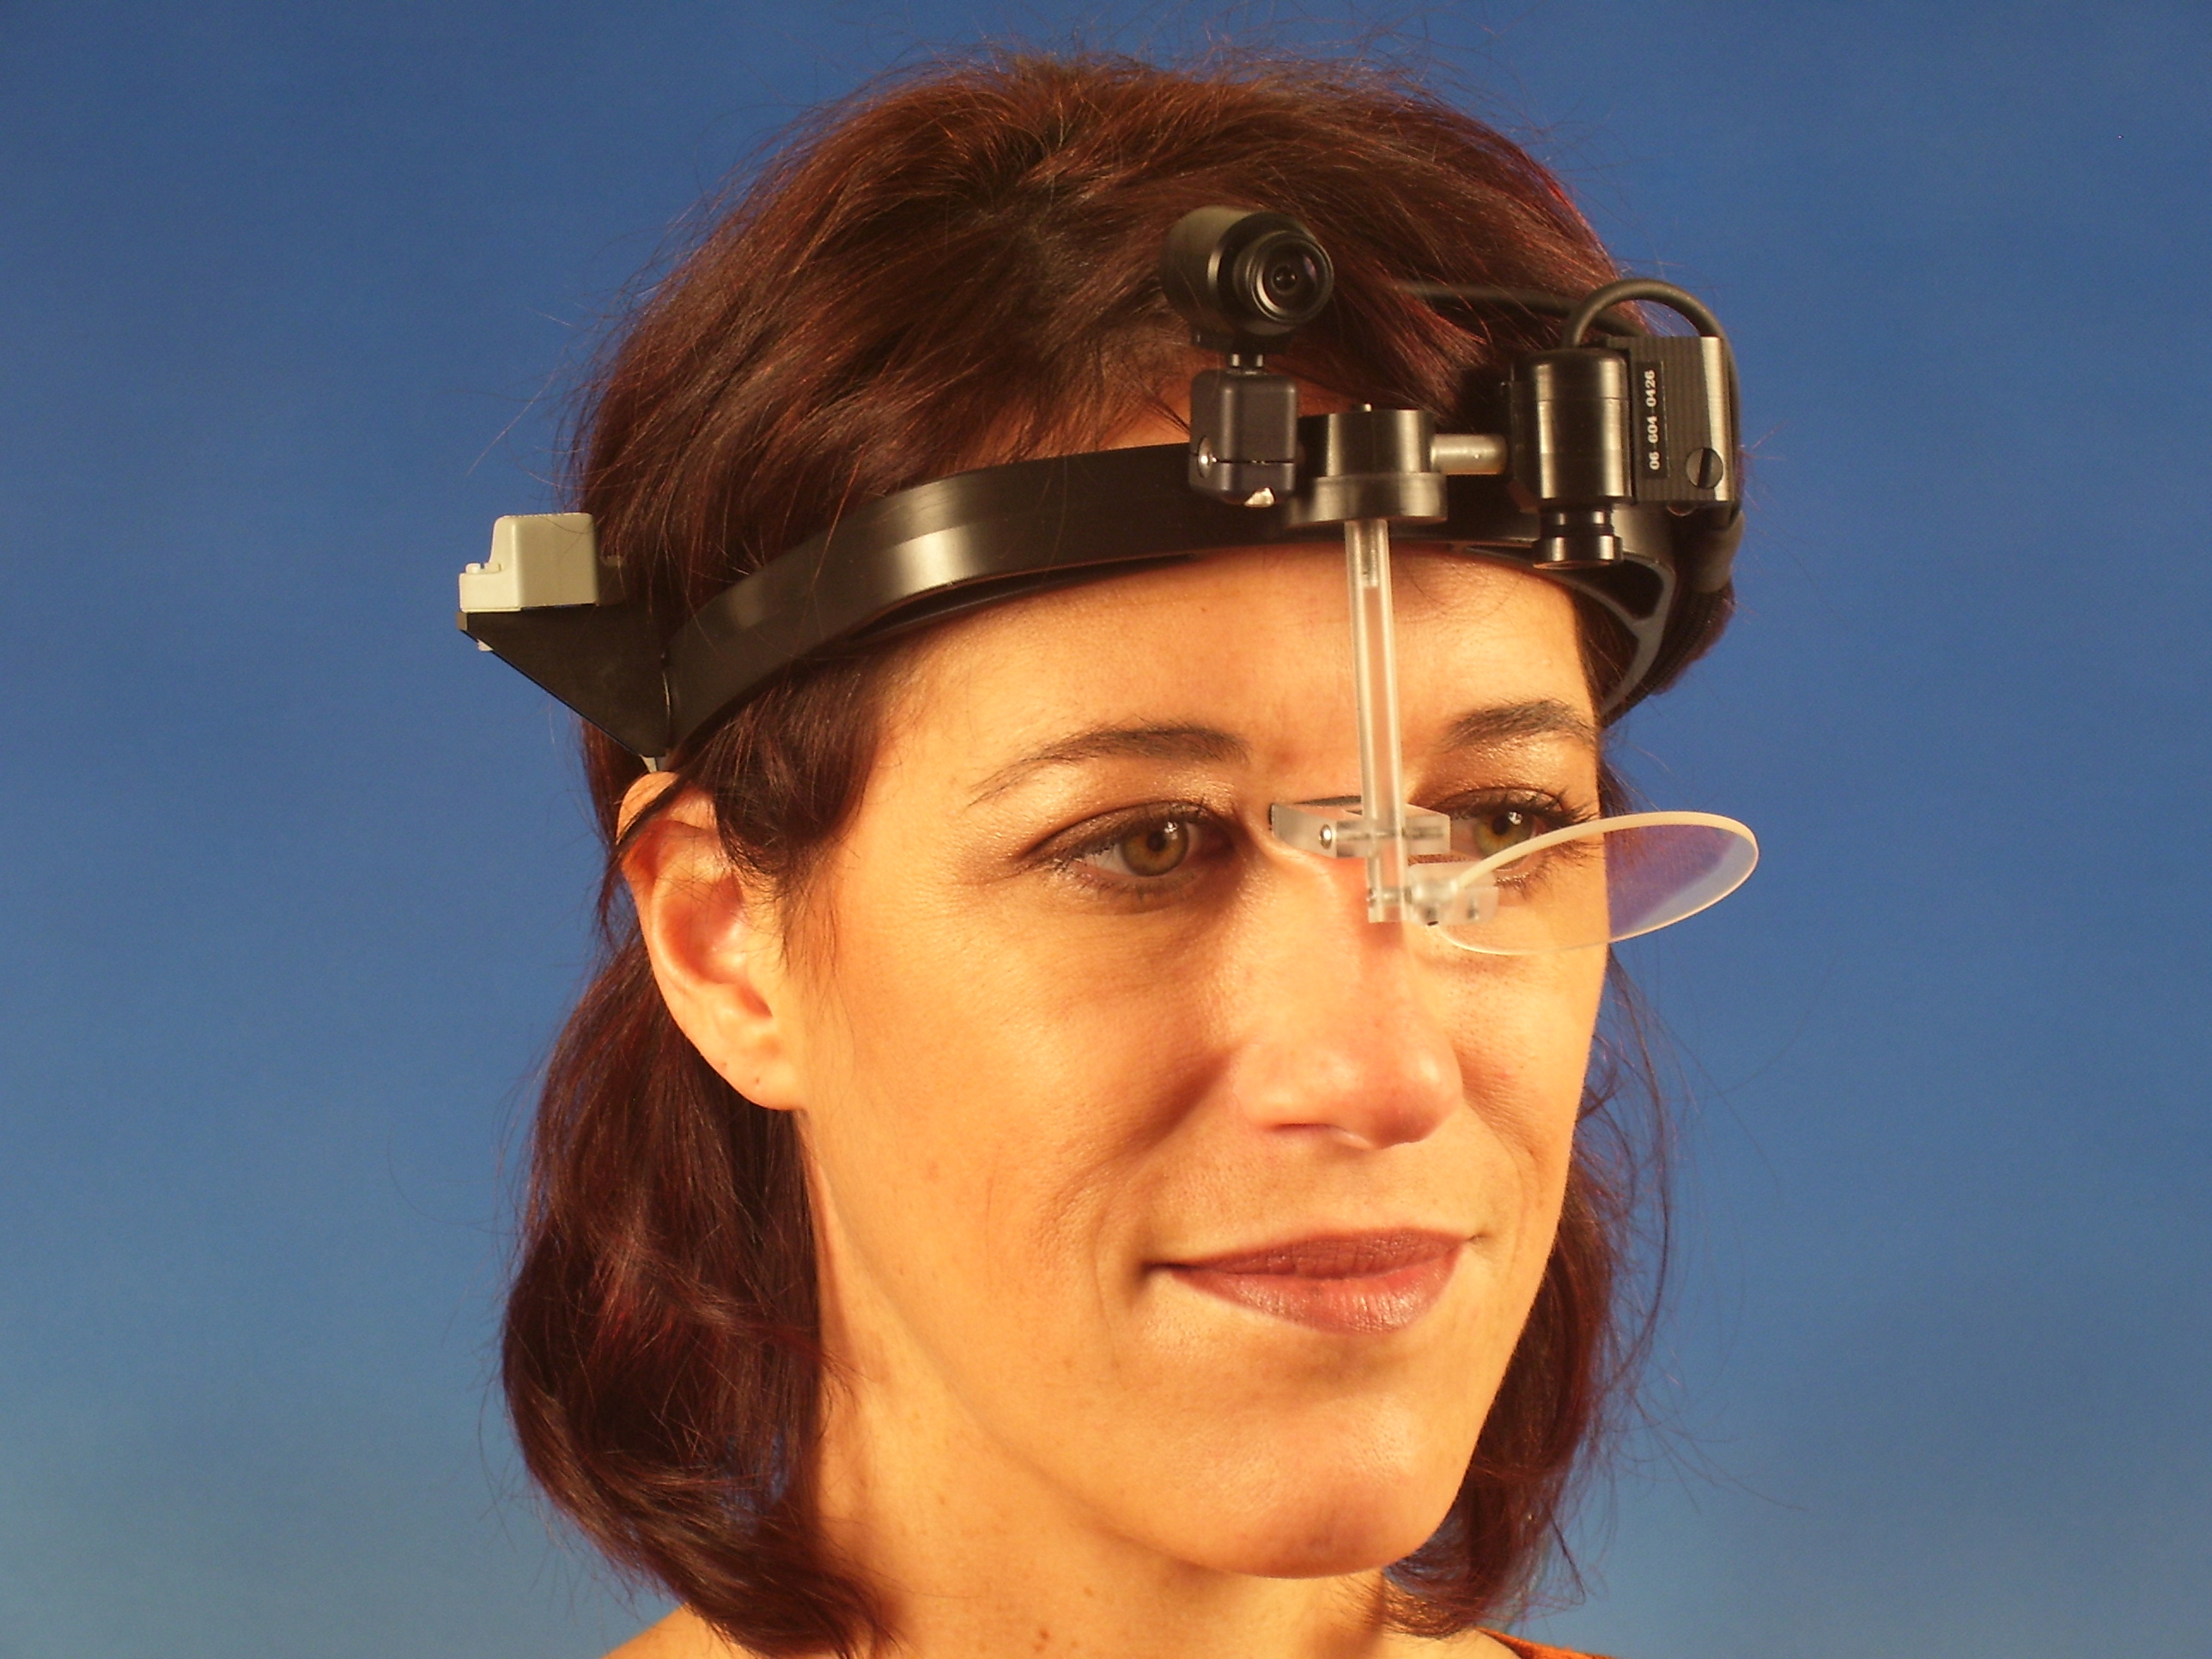 VisionTrak Head Mounted Eye Trackign System